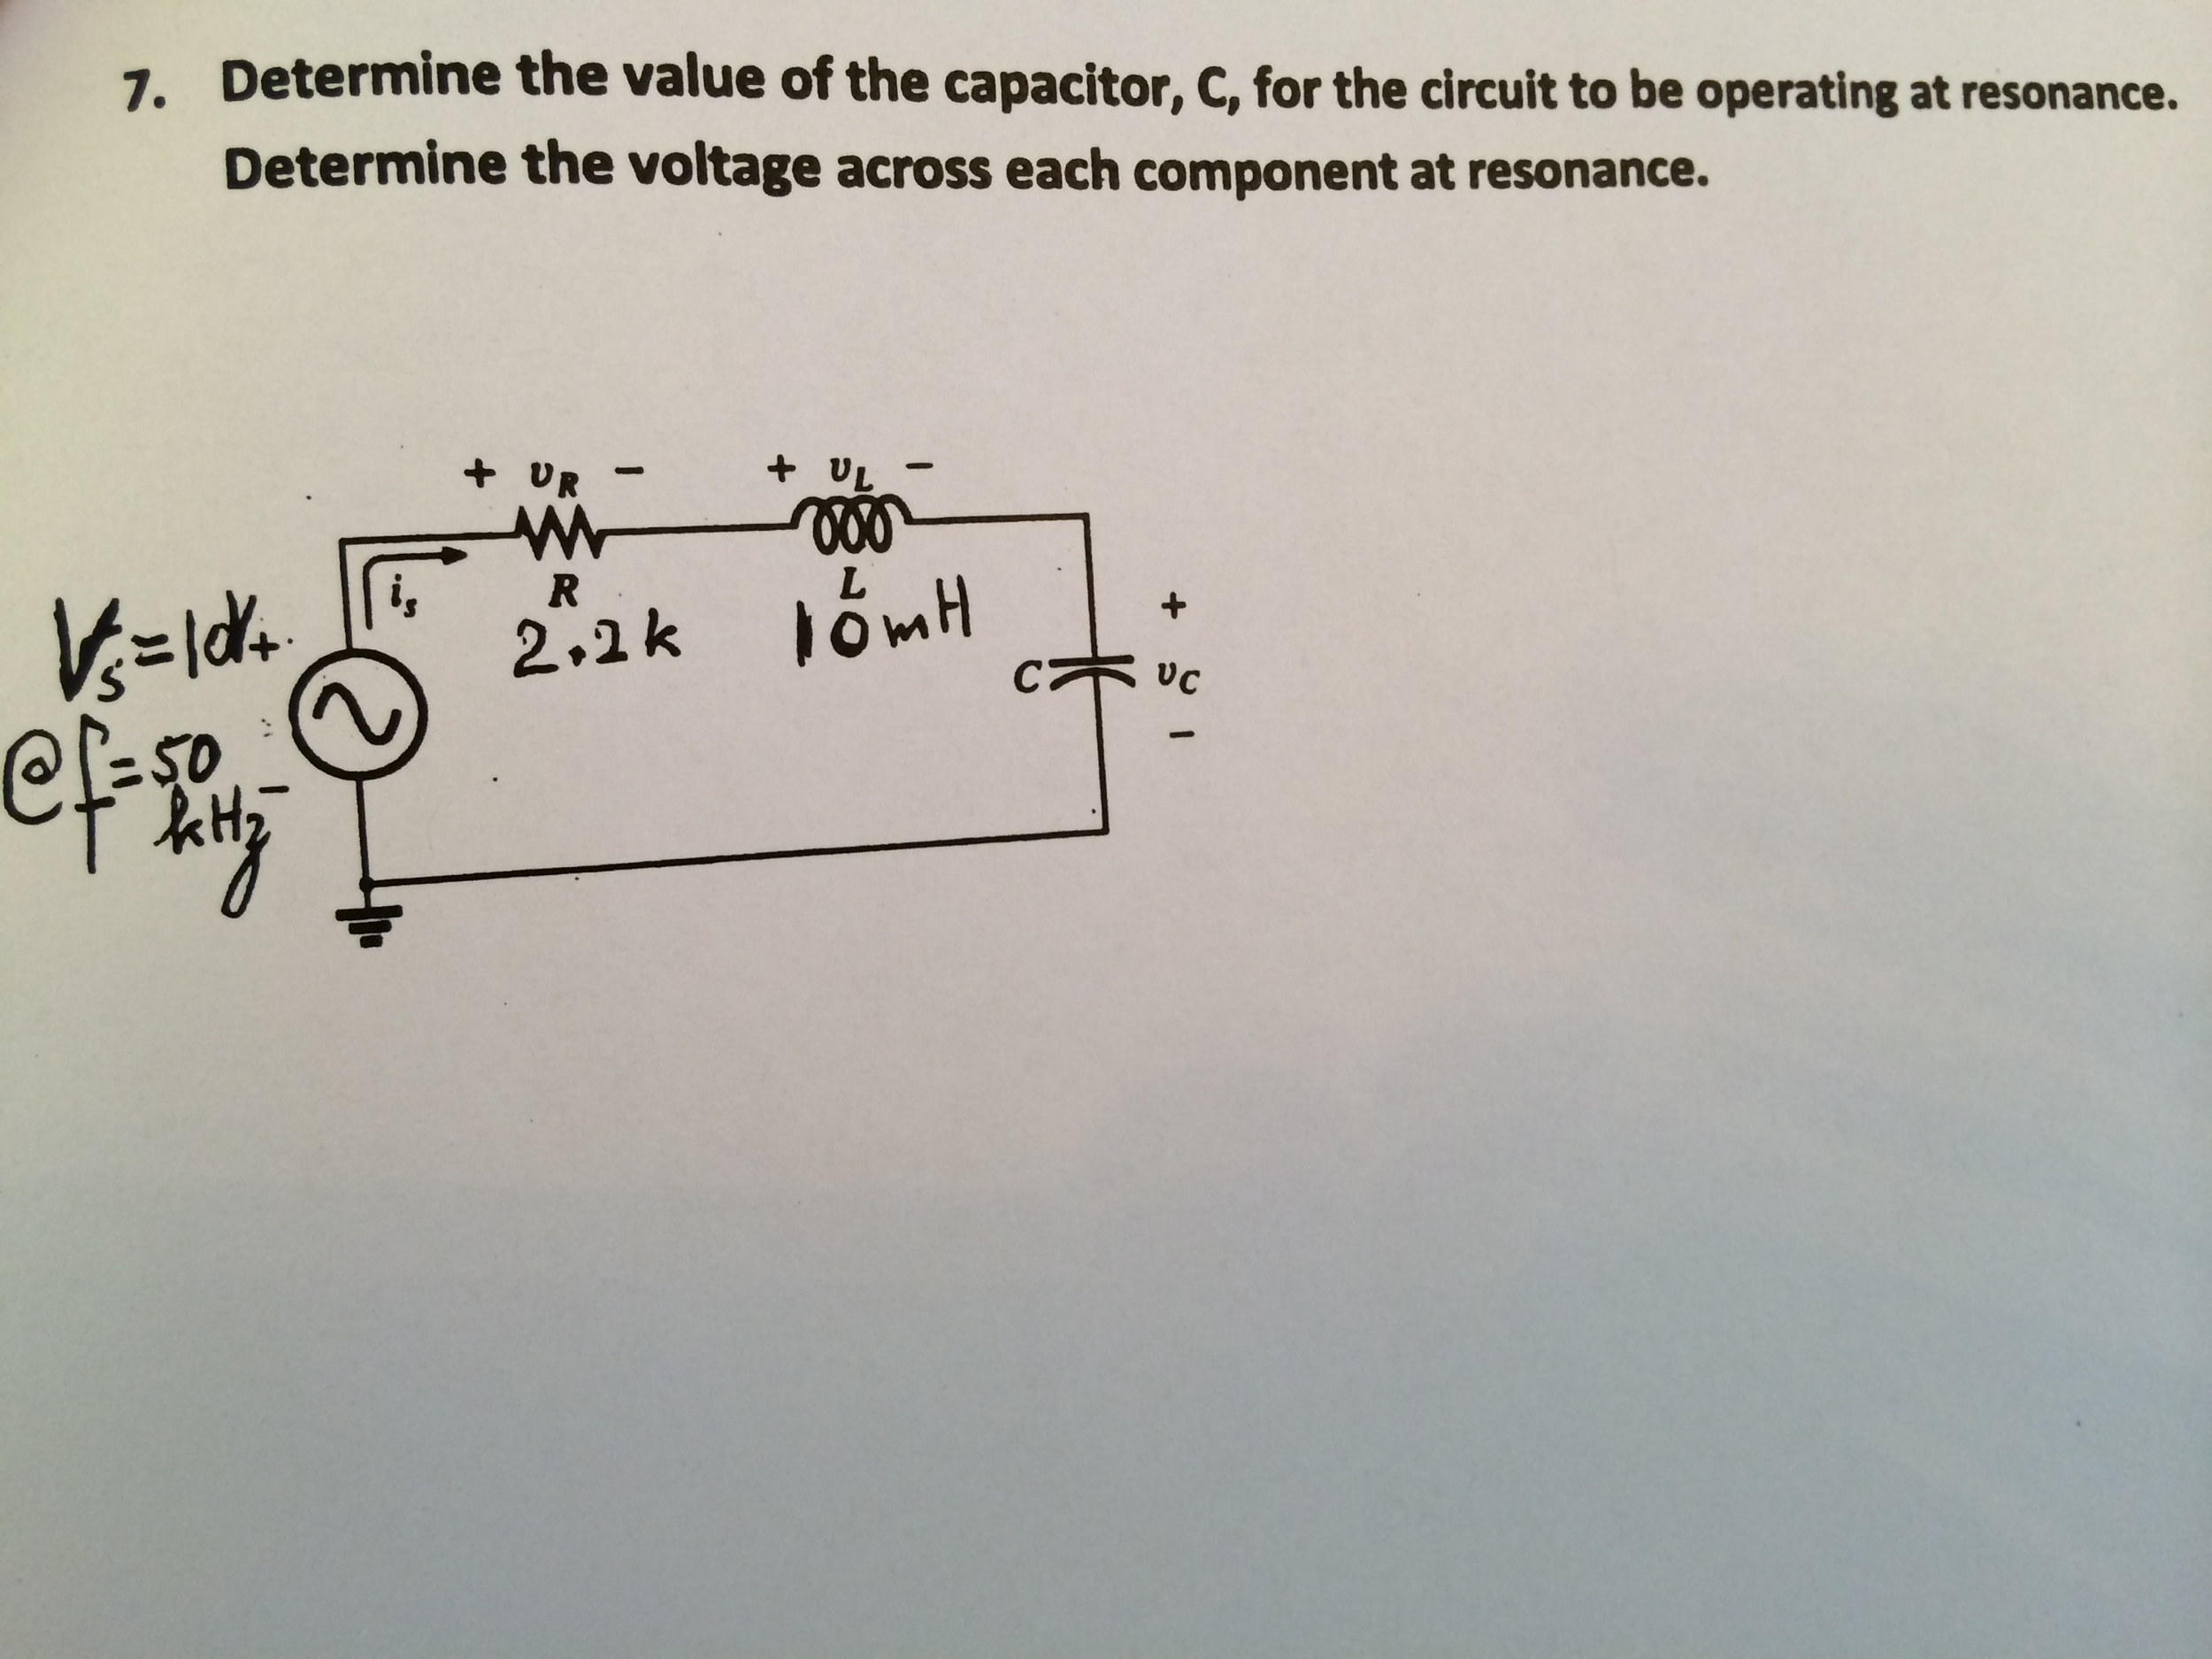 Determine the value of the capacitor, C, for the c